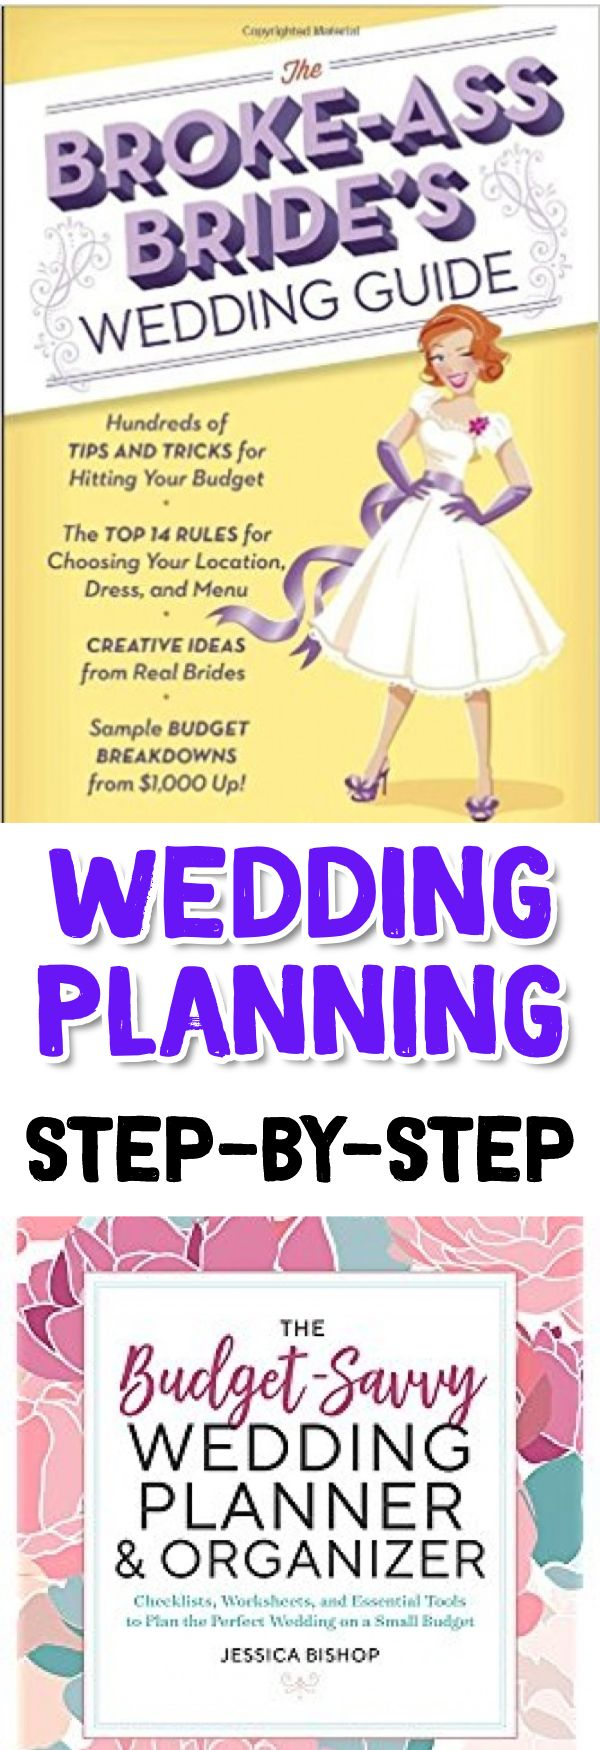 Wedding Planner Checklist and Timeline for planning your DIY wedding #weddingideas #weddingplanner #weddingdiy #weddingplanning